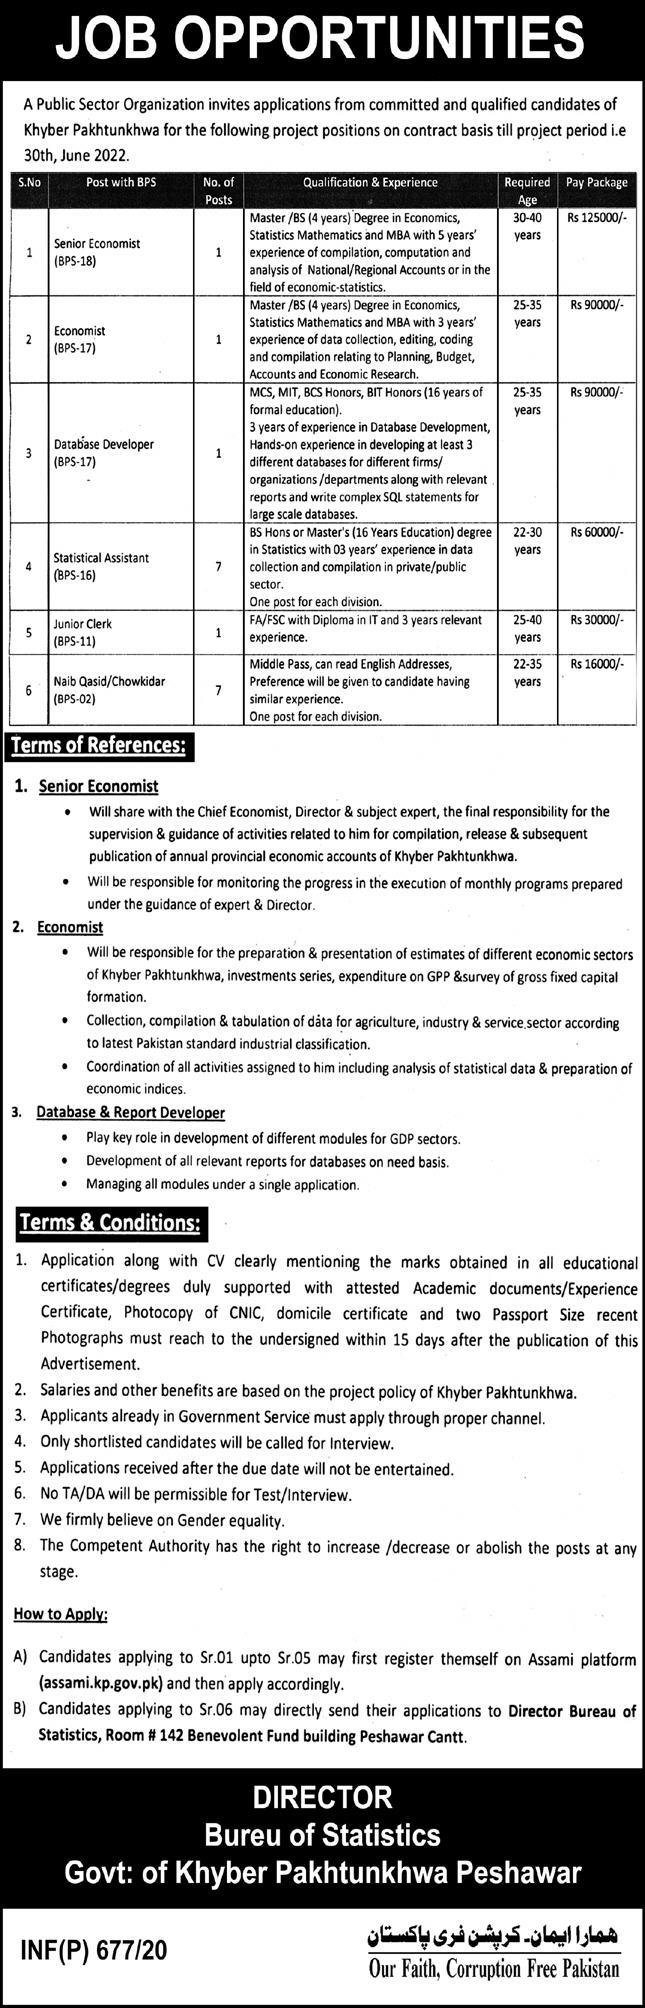 Pakistan Bureau Of Statistics jobs newspaper ad for Statistical Assistant in Peshawar